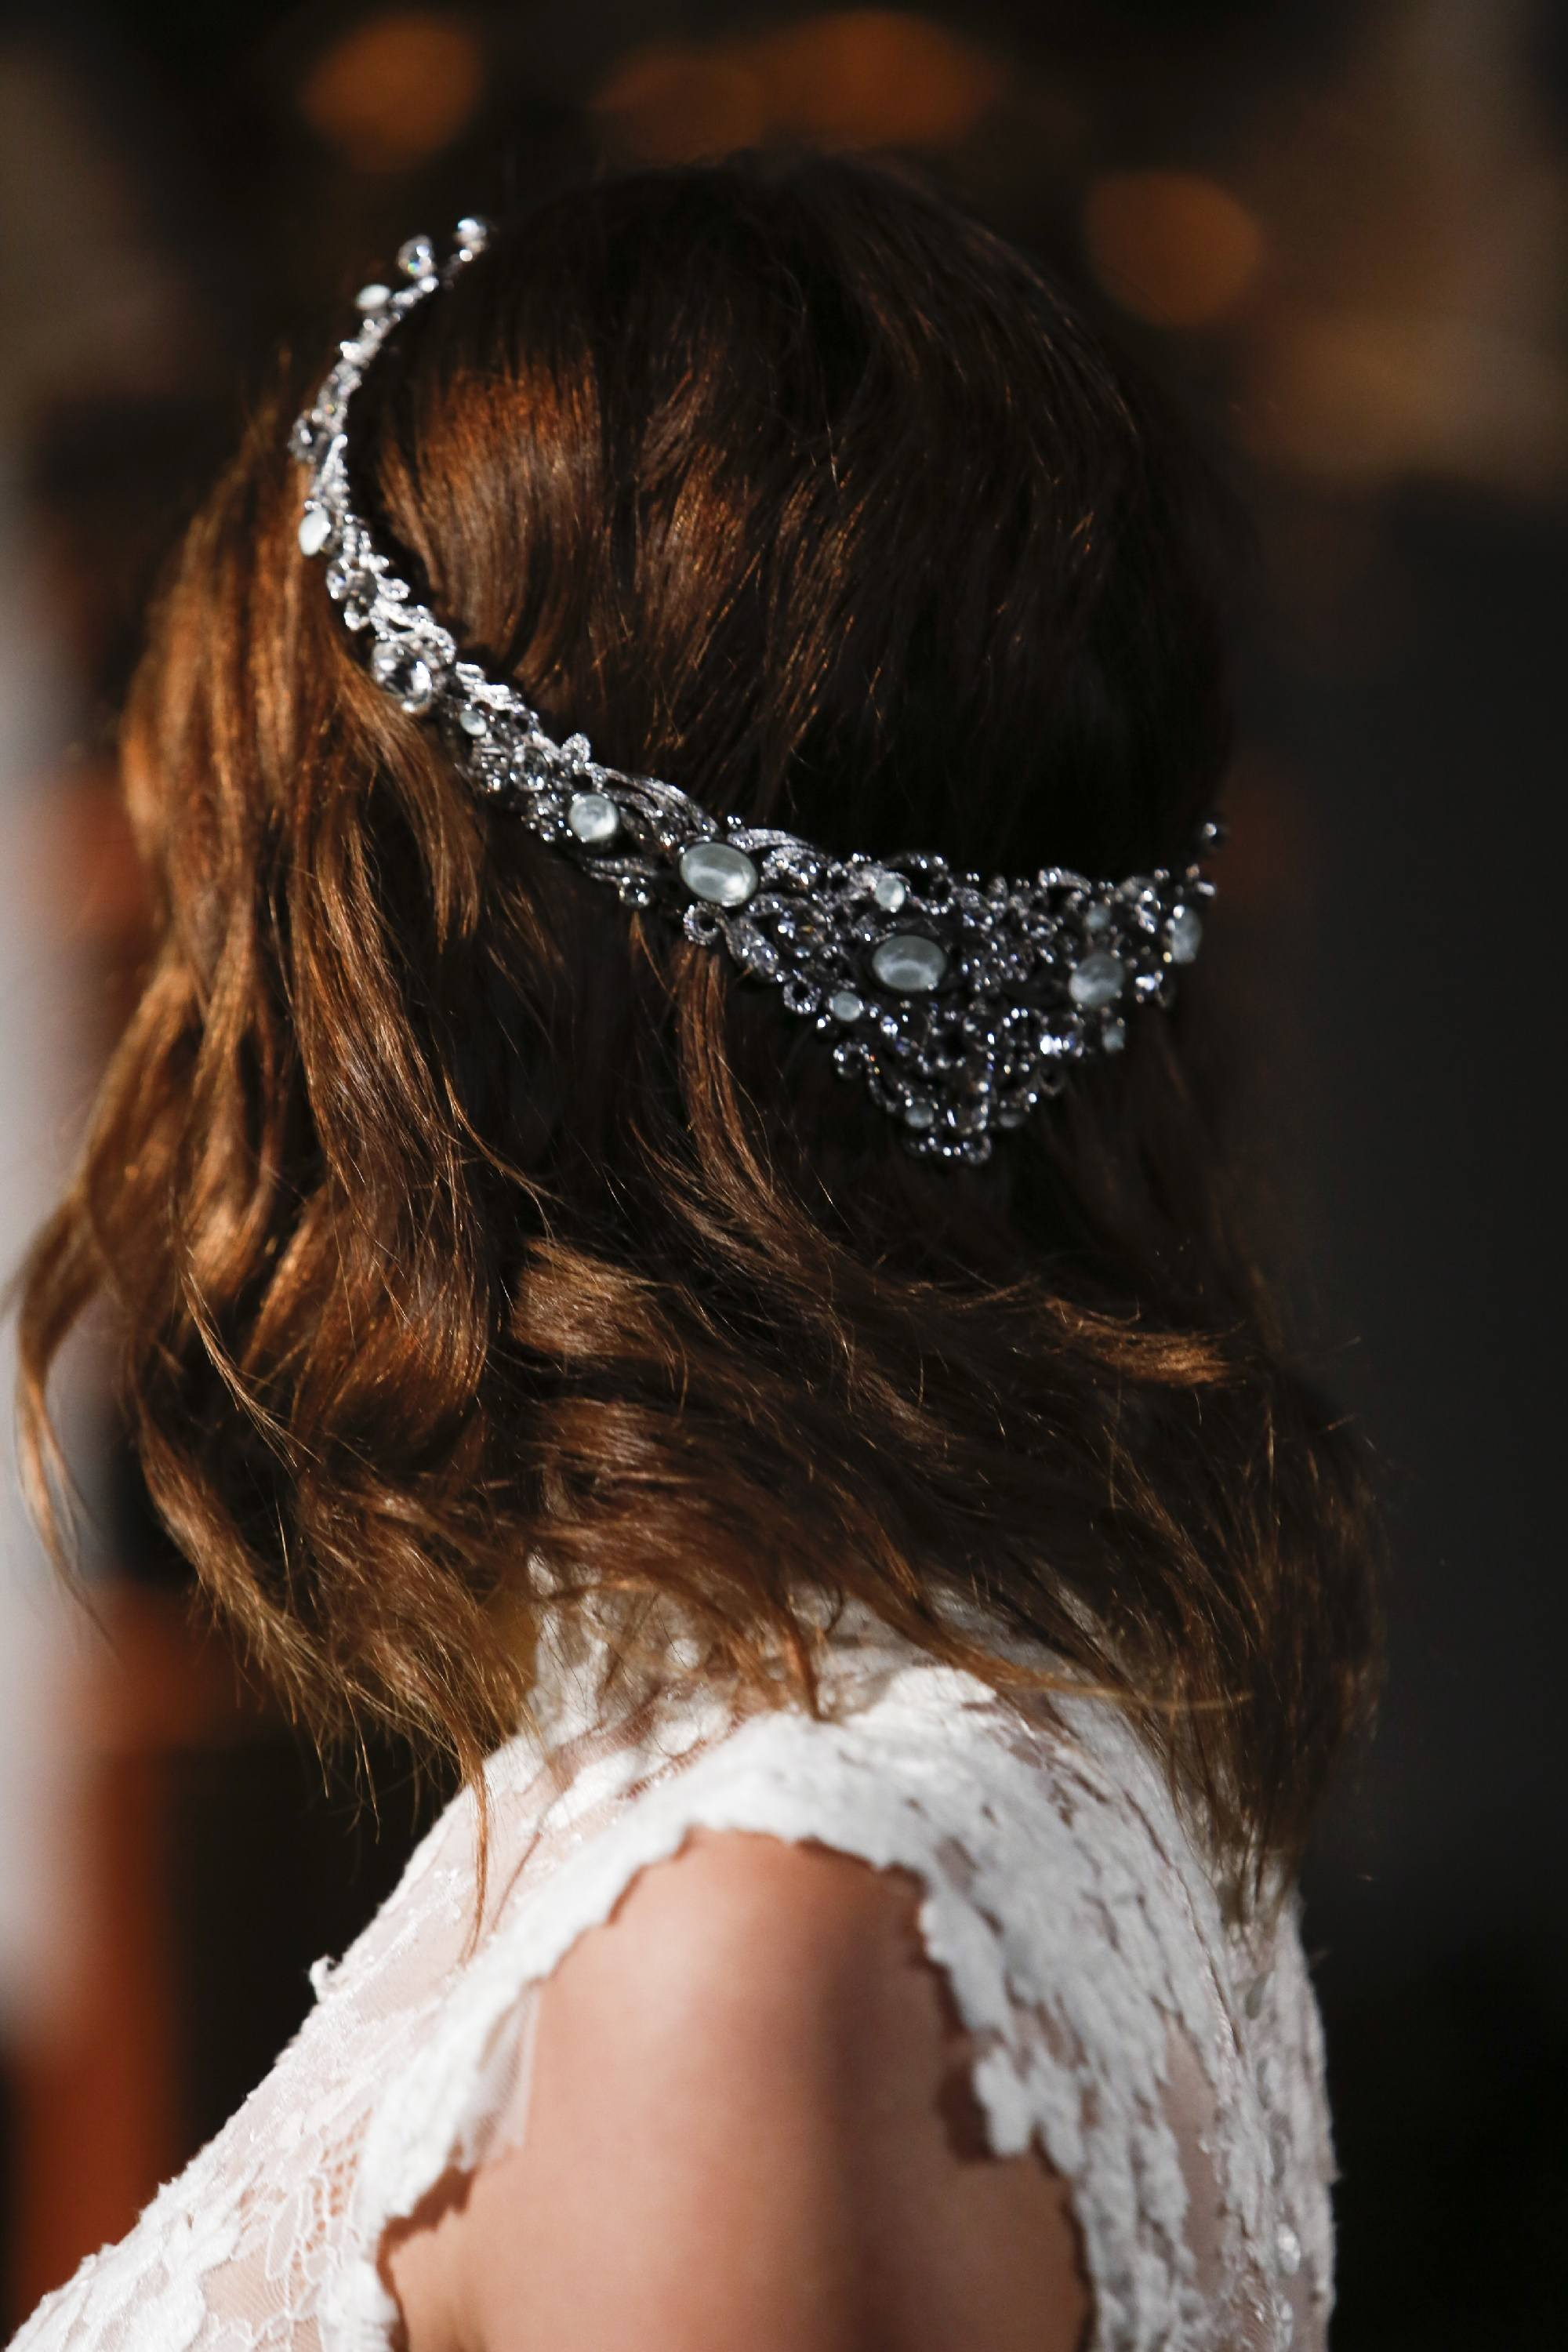 wedding hairstyles for short hair - better from behind Indigital